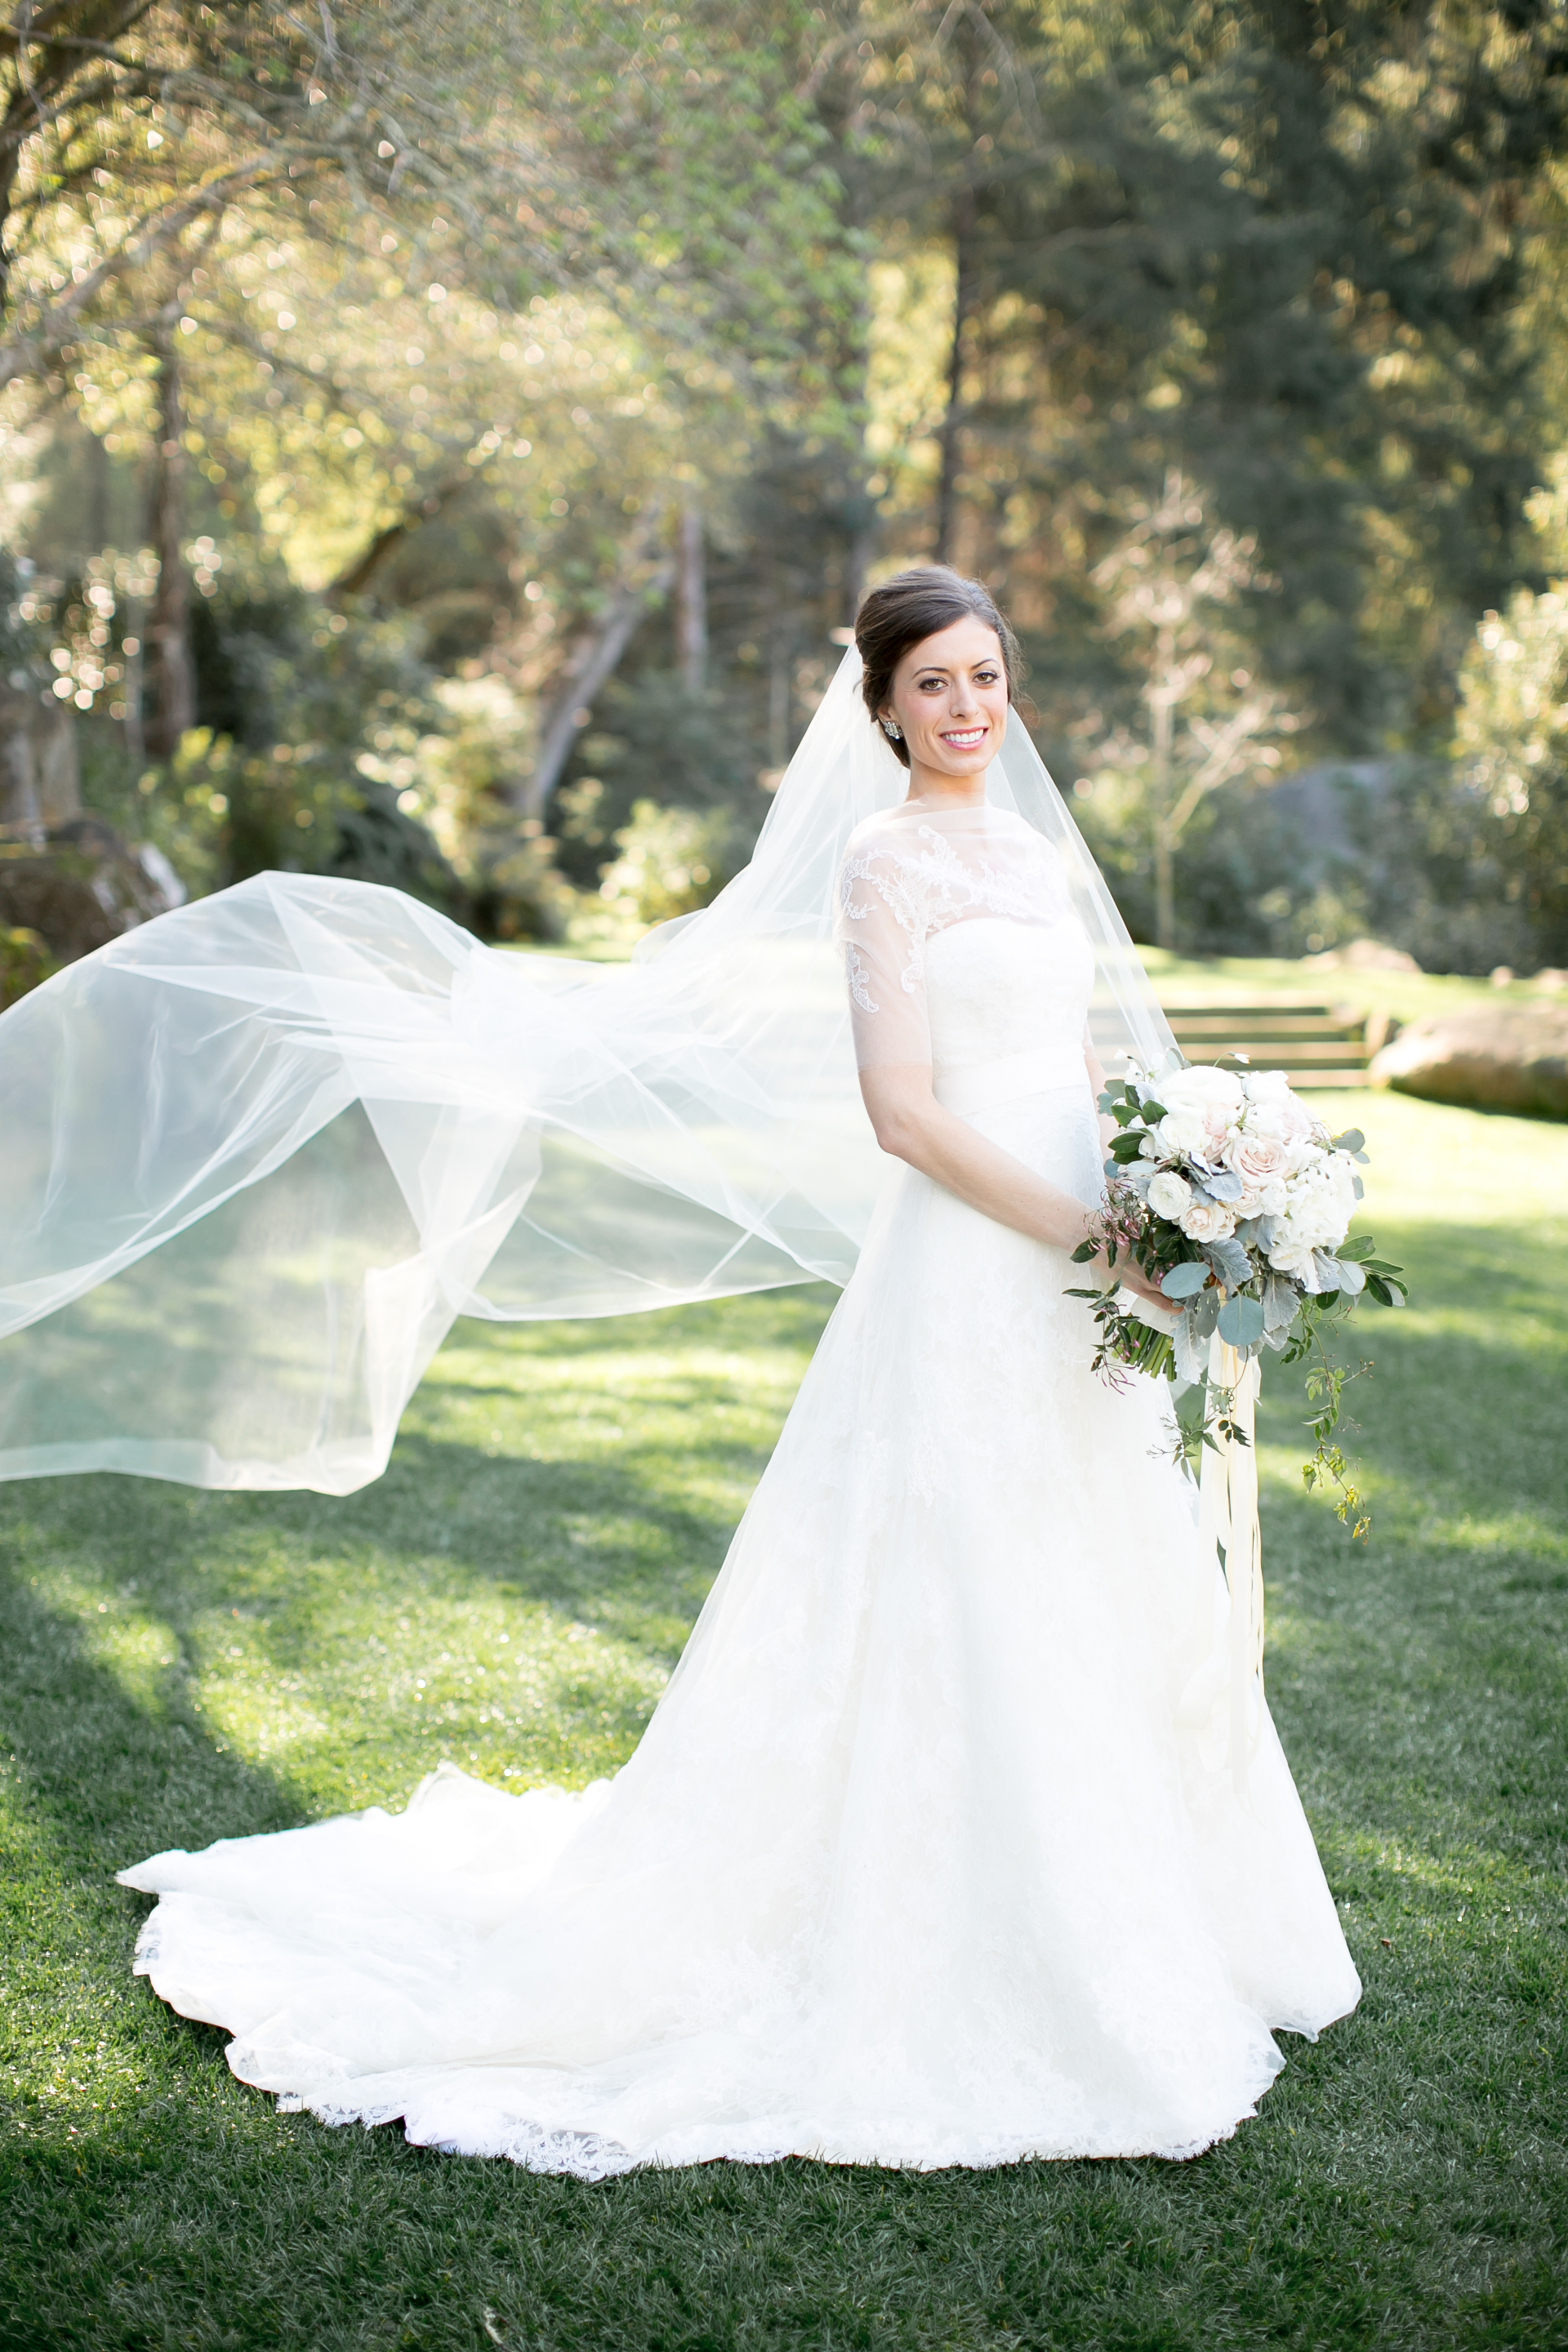 Our Napa Valley Wedding – Story Hill Lane